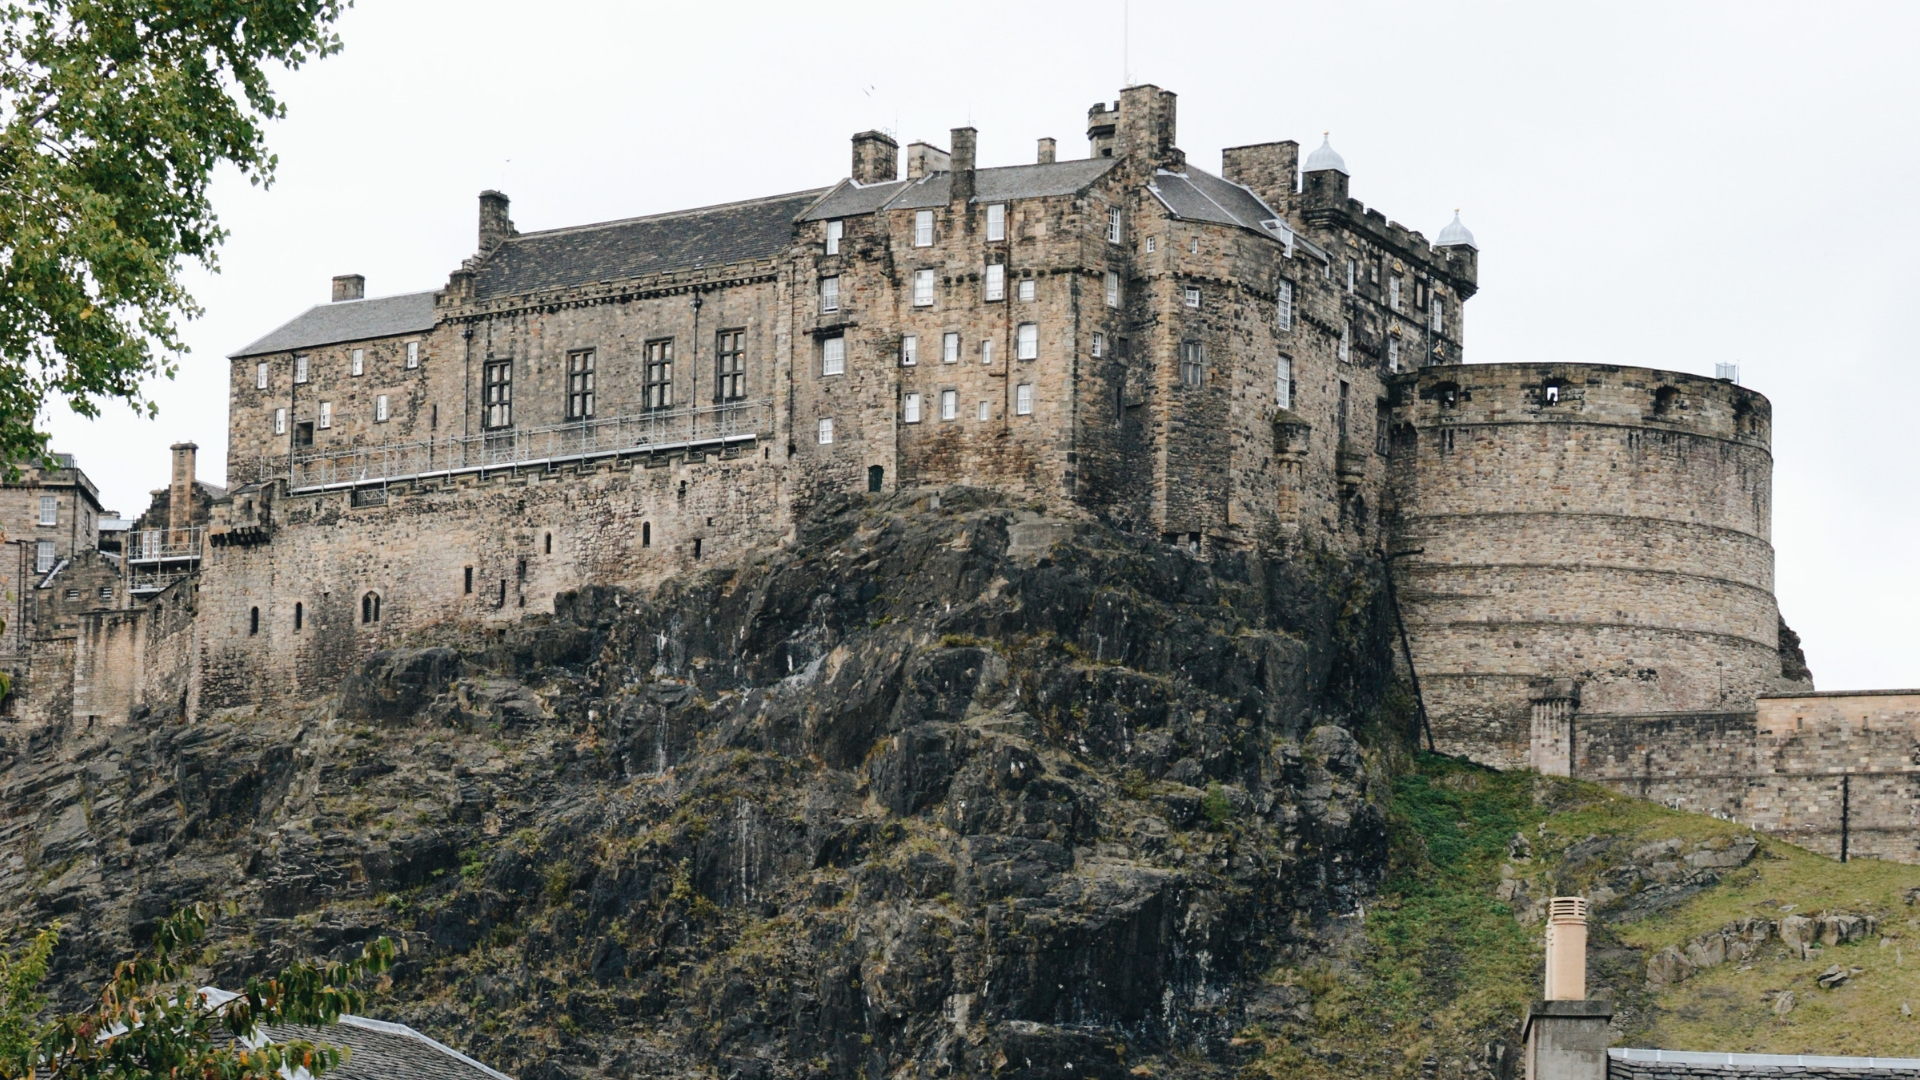 Free Entry to Edinburgh Castle (and other Historic Scotland properties) each November